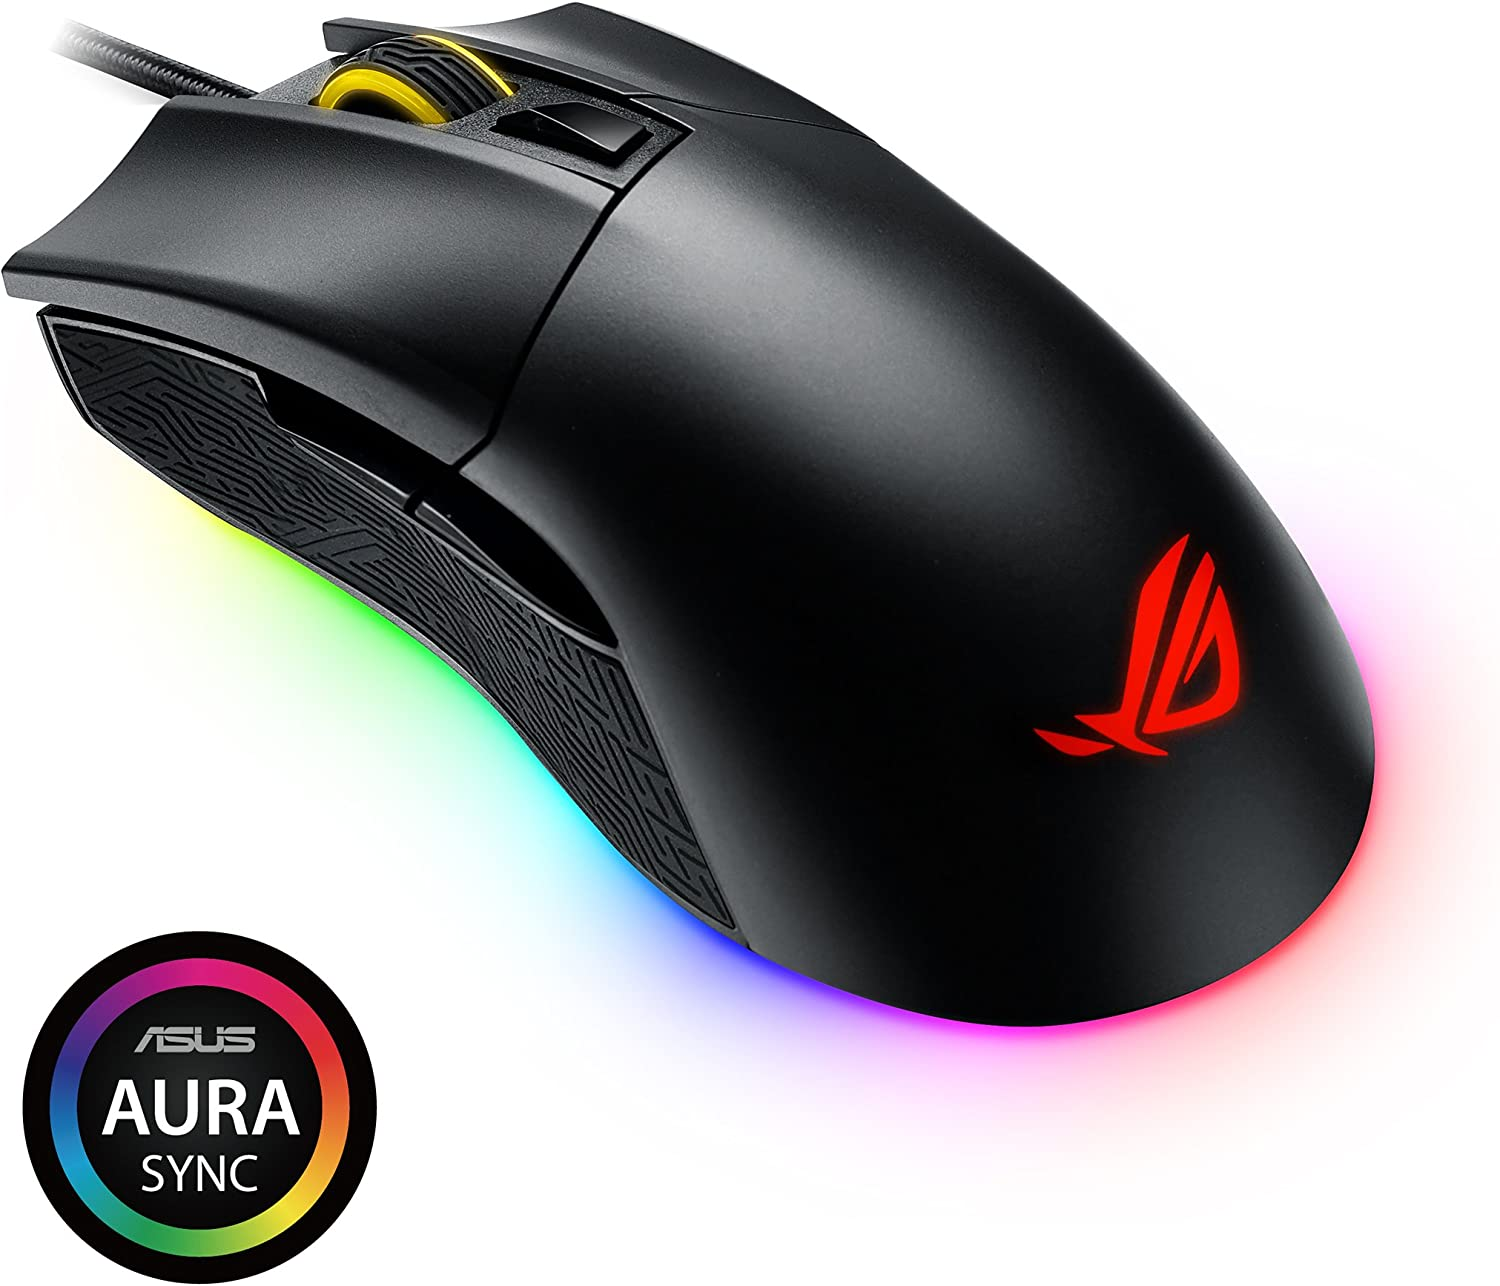 Best mouse for computers under $150